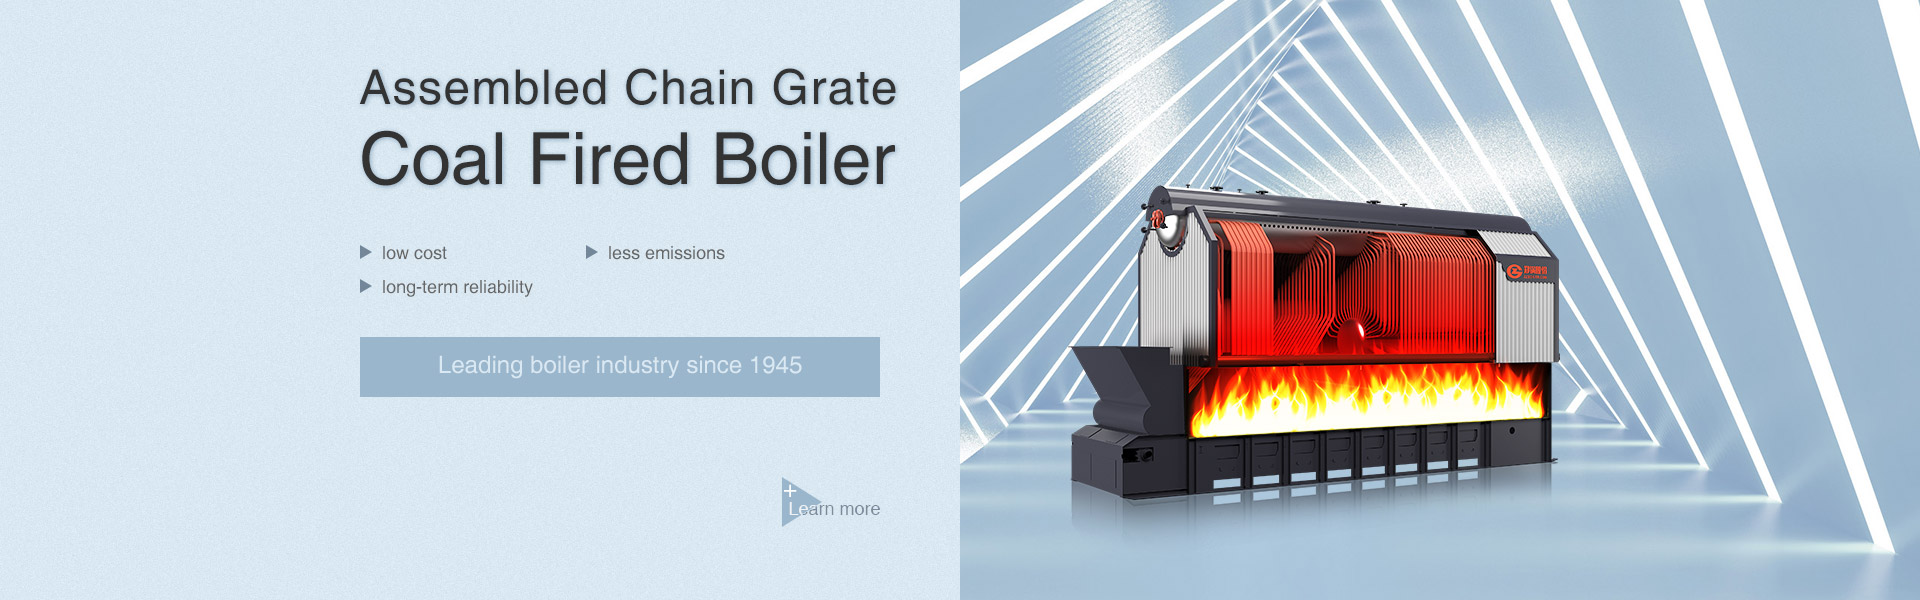 assembled biomass fired chain grate boiler